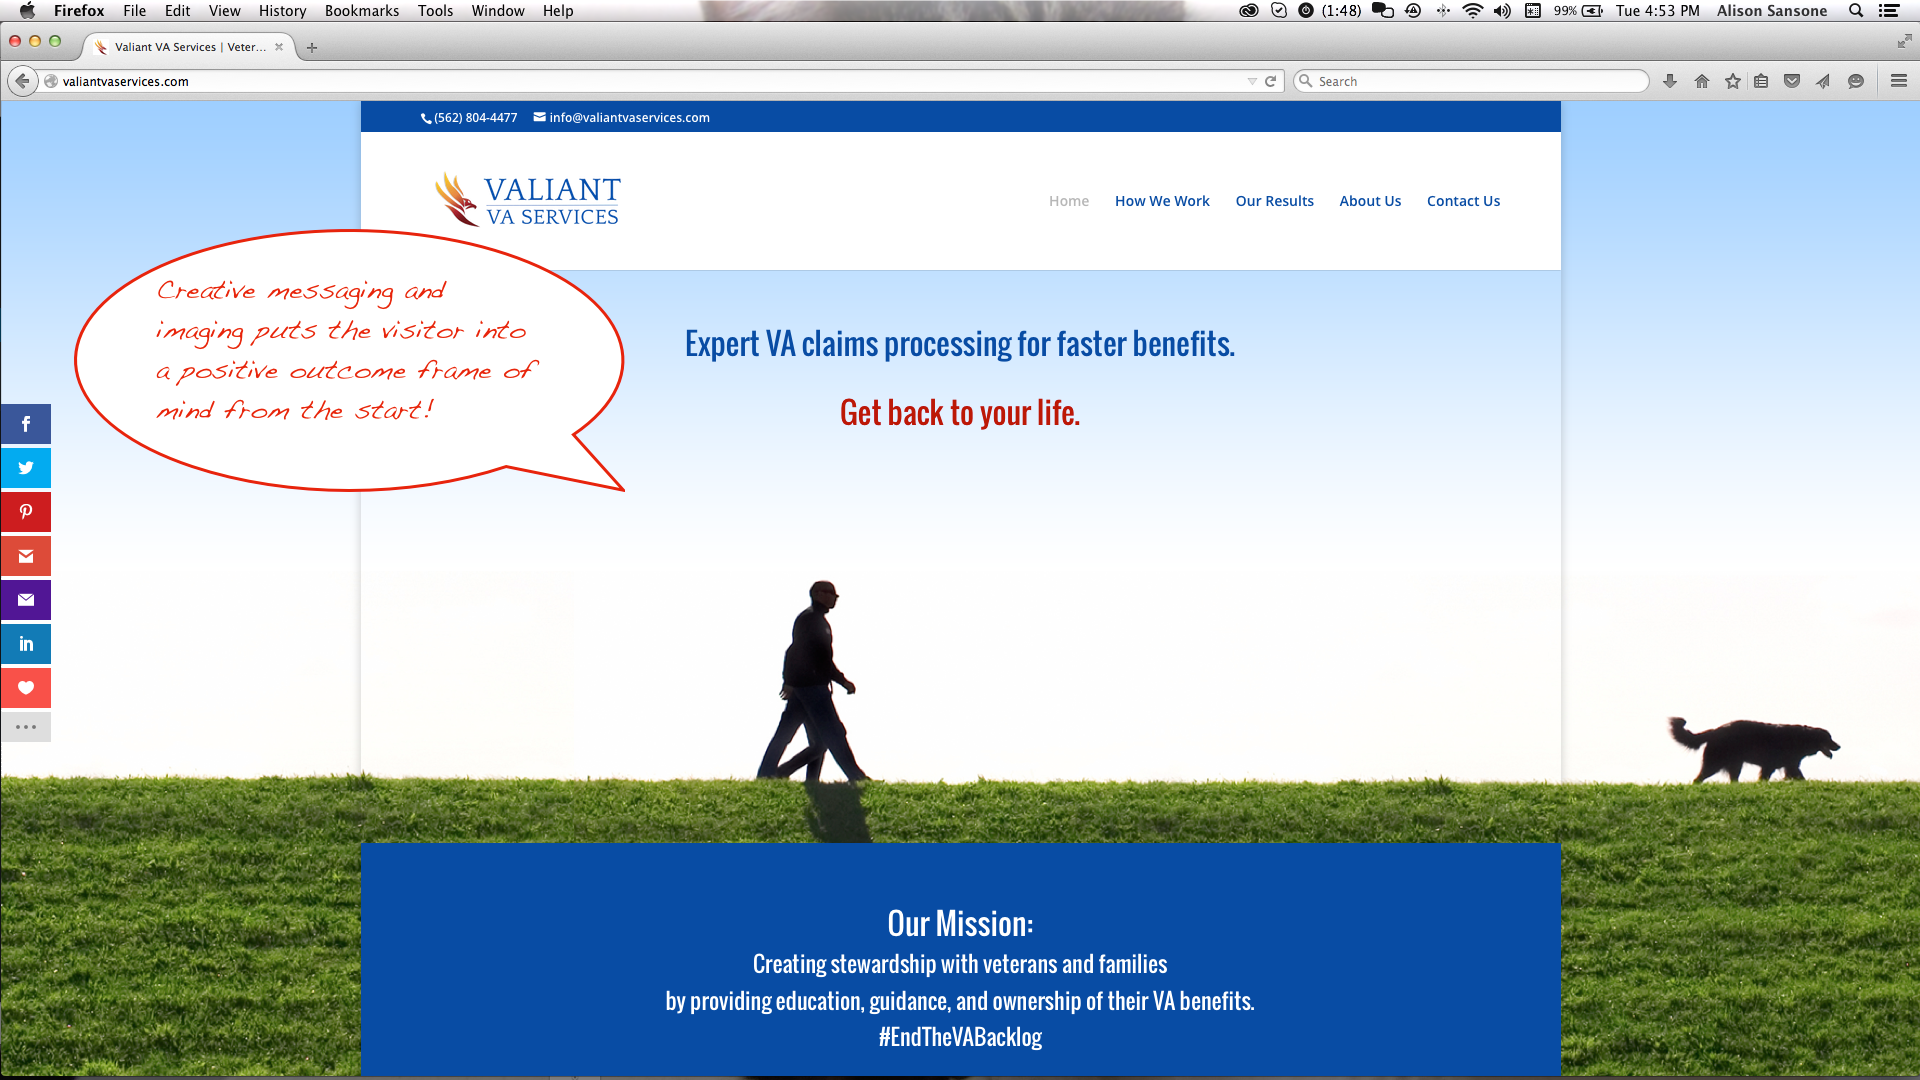 Another Awesome qualiant project - Valiant VA Services